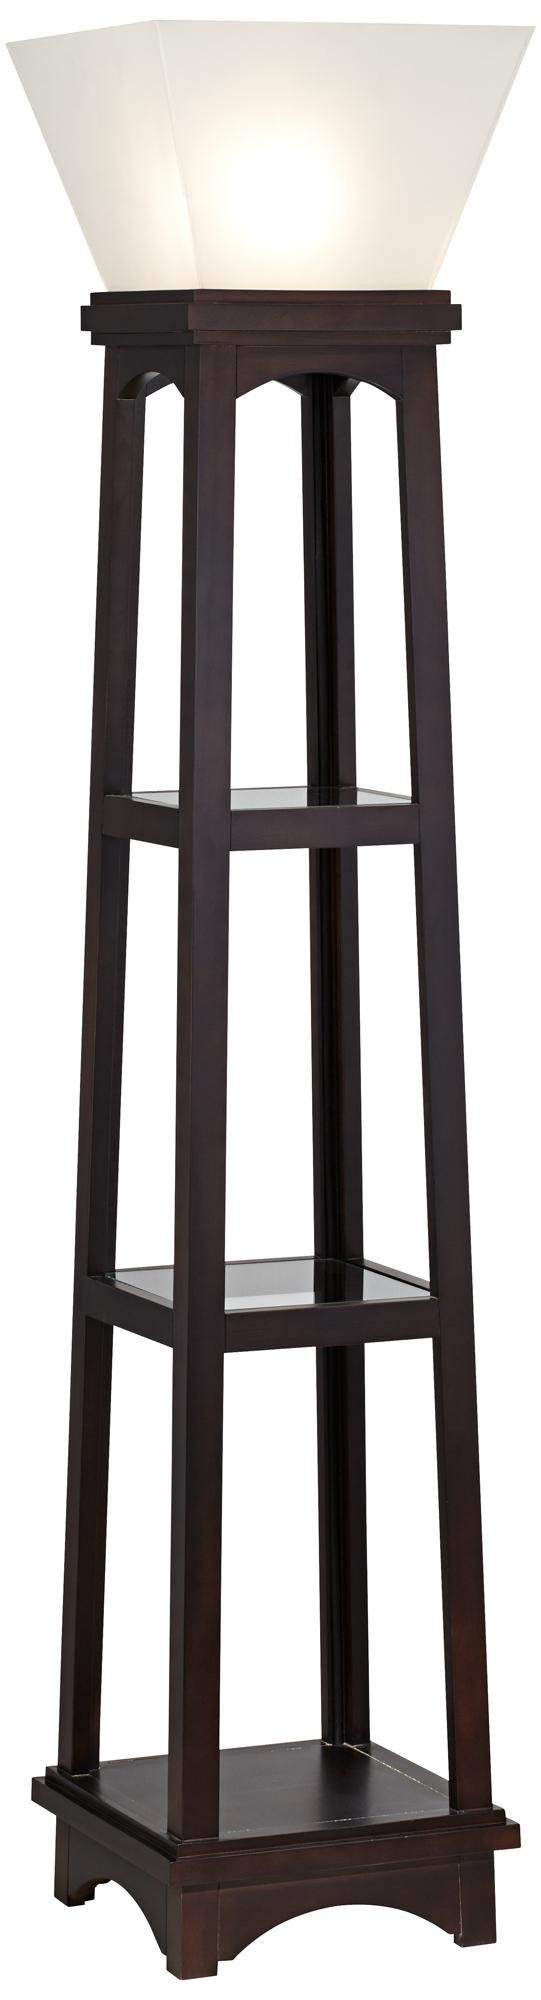 Monaco espresso 3 shelf etagere torchiere floor lamp for Floor lamp with shelves